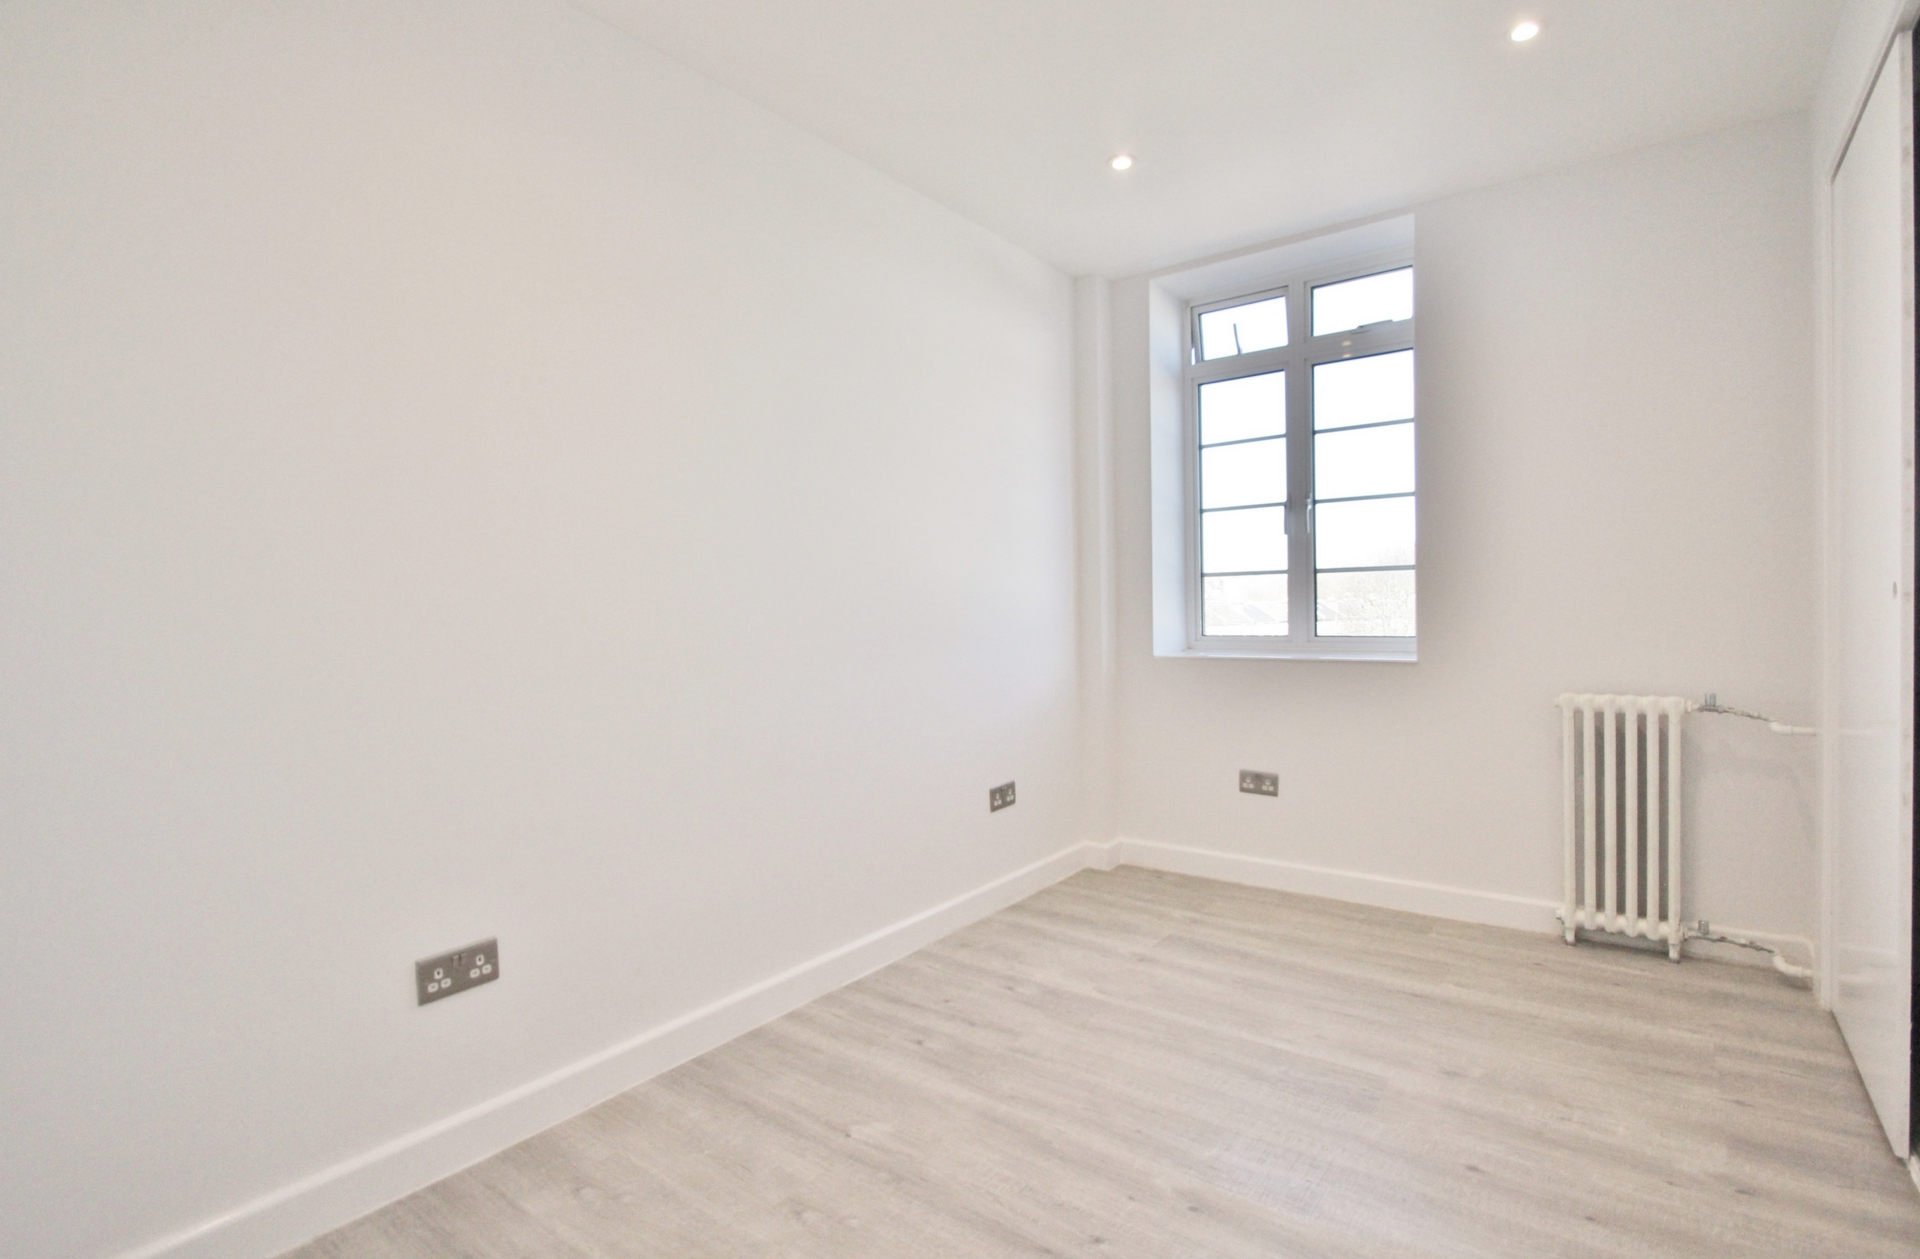 Property To Rent Hammersmith Road, Hammersmith, W6 | 4 ...